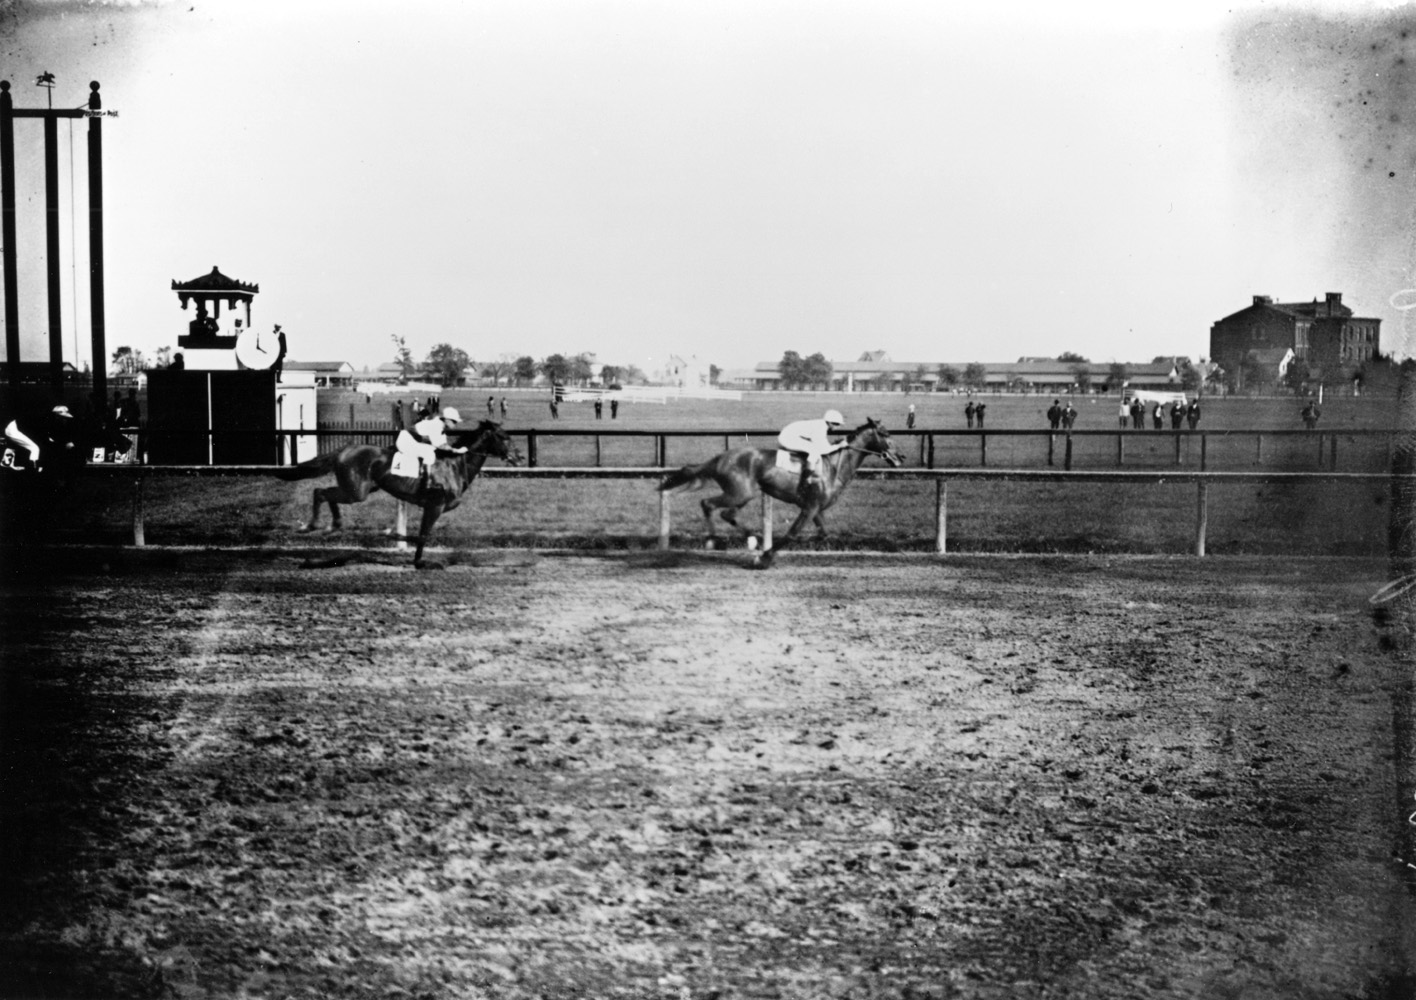 Sysonby (Nicol up) winning the 1905 Champion Stakes at Sheepshead Bay, his final career race (Keeneland Library Cook Collection/Museum Collection)